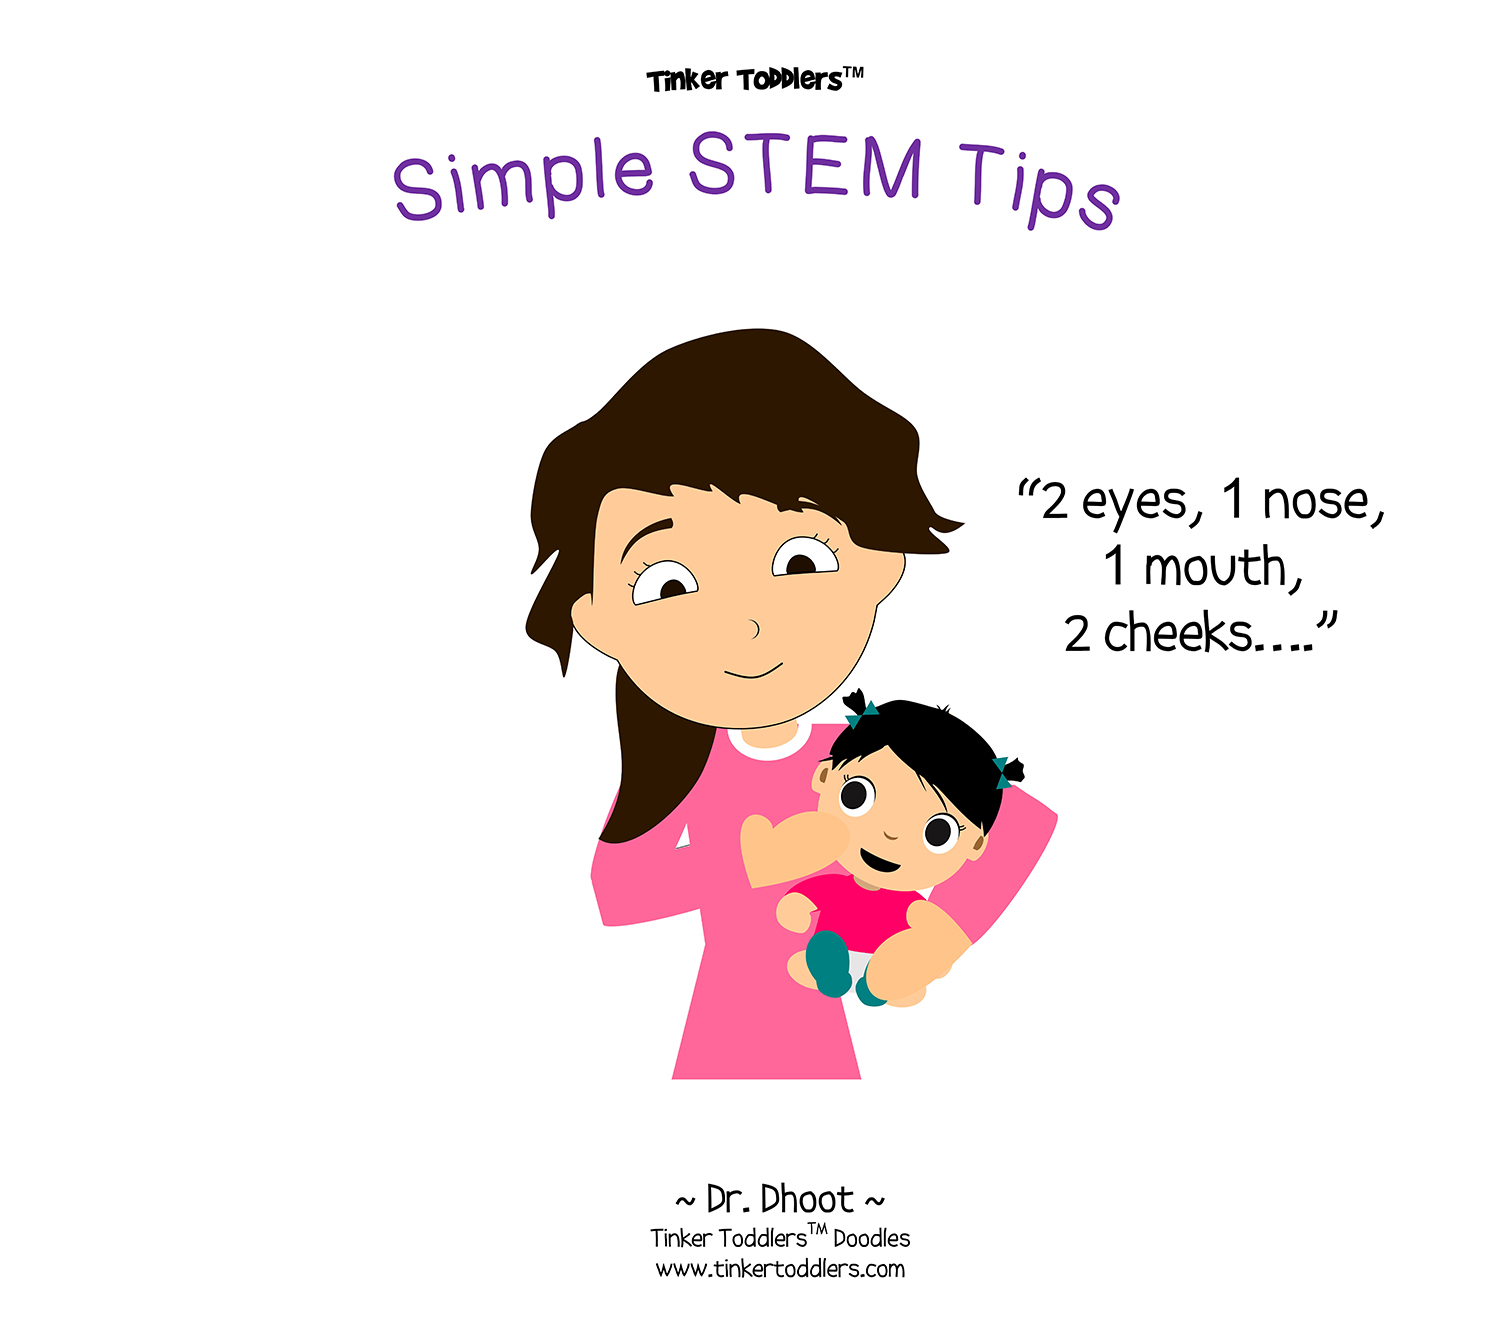 mother daughter, mom and daughter, mom and baby, counting facial features, stem tips, stem cartoons